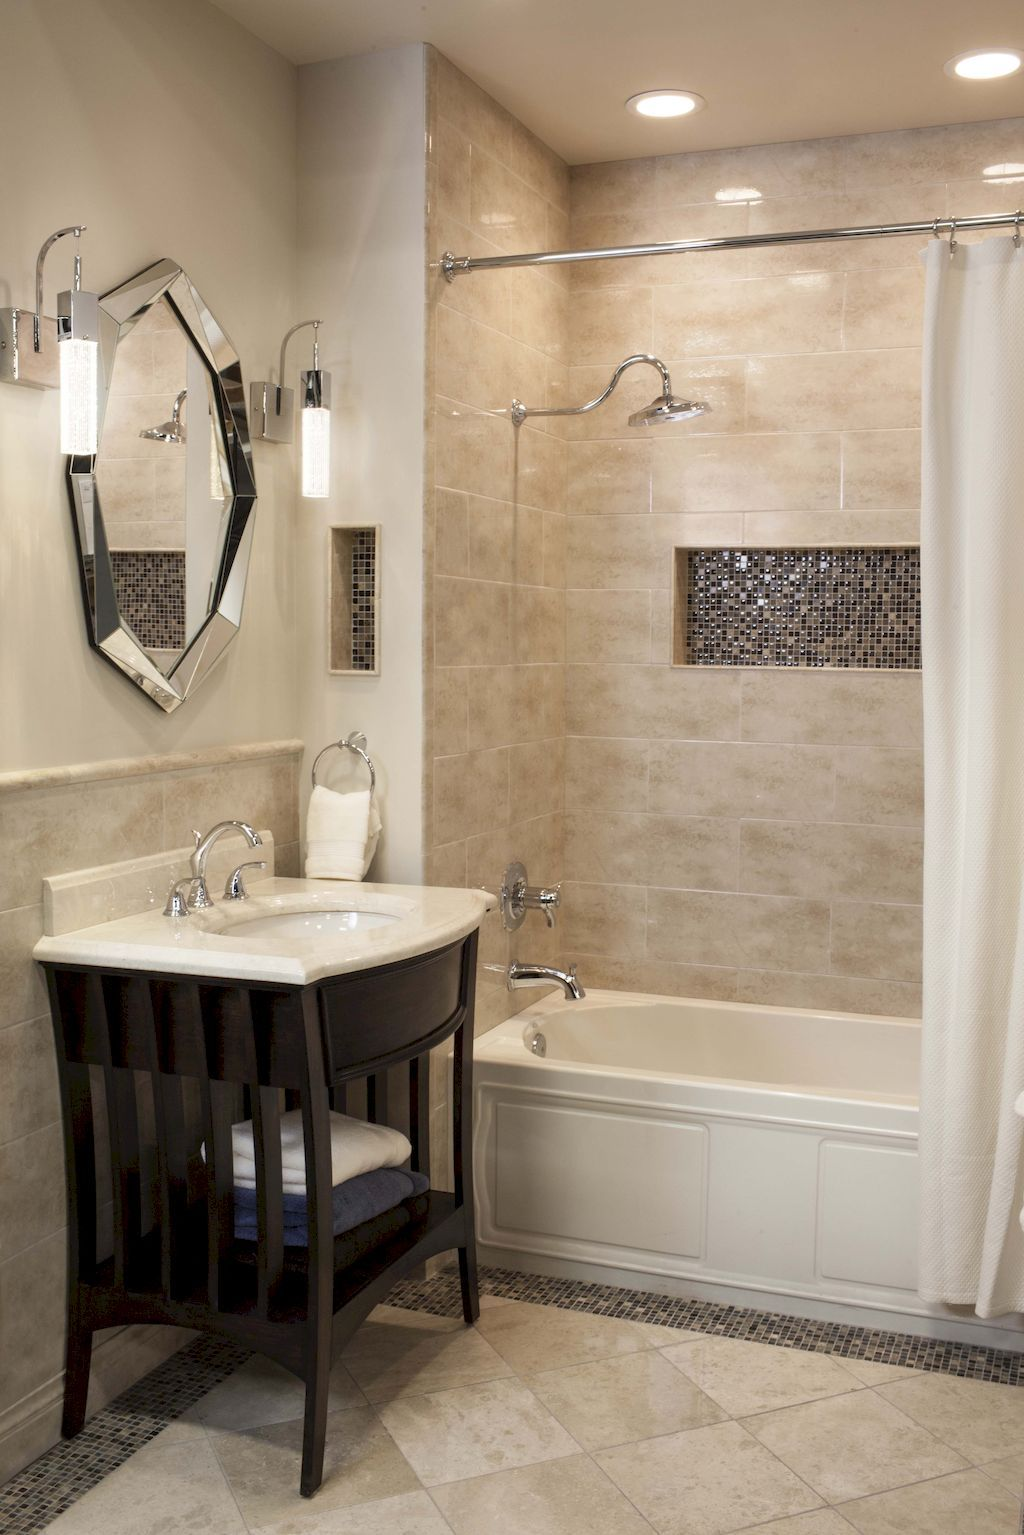 Gorgeous 40 Small Bathroom Remodel Ideas With Bathtub Https